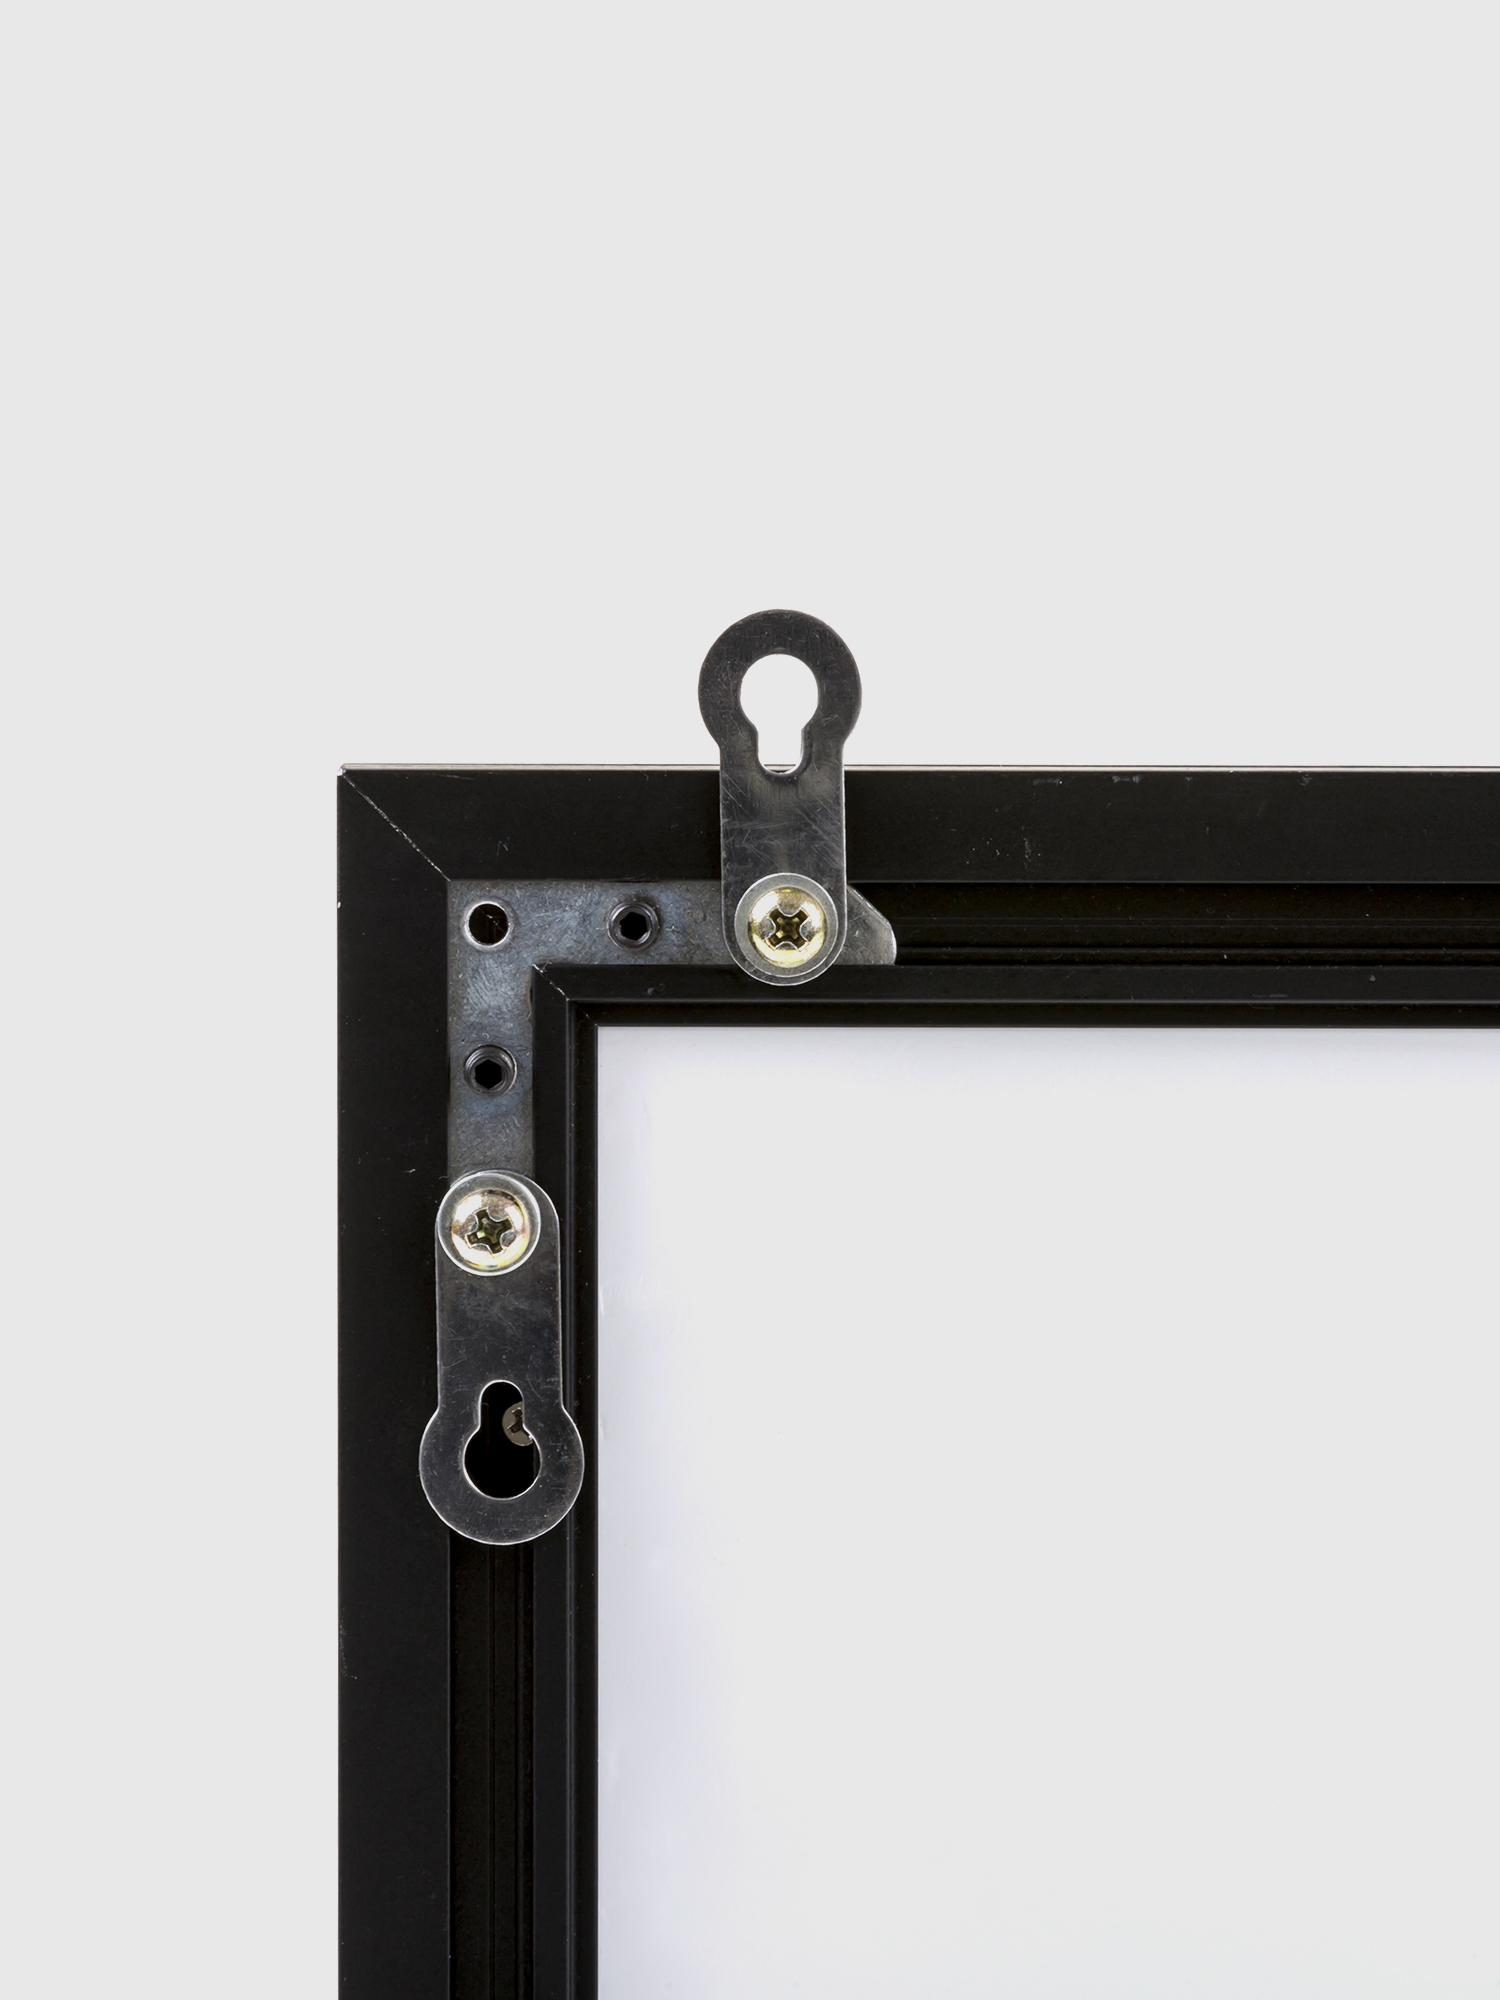 Diesel - 11000 FRAME IT!,  - Home Accessories - Image 7